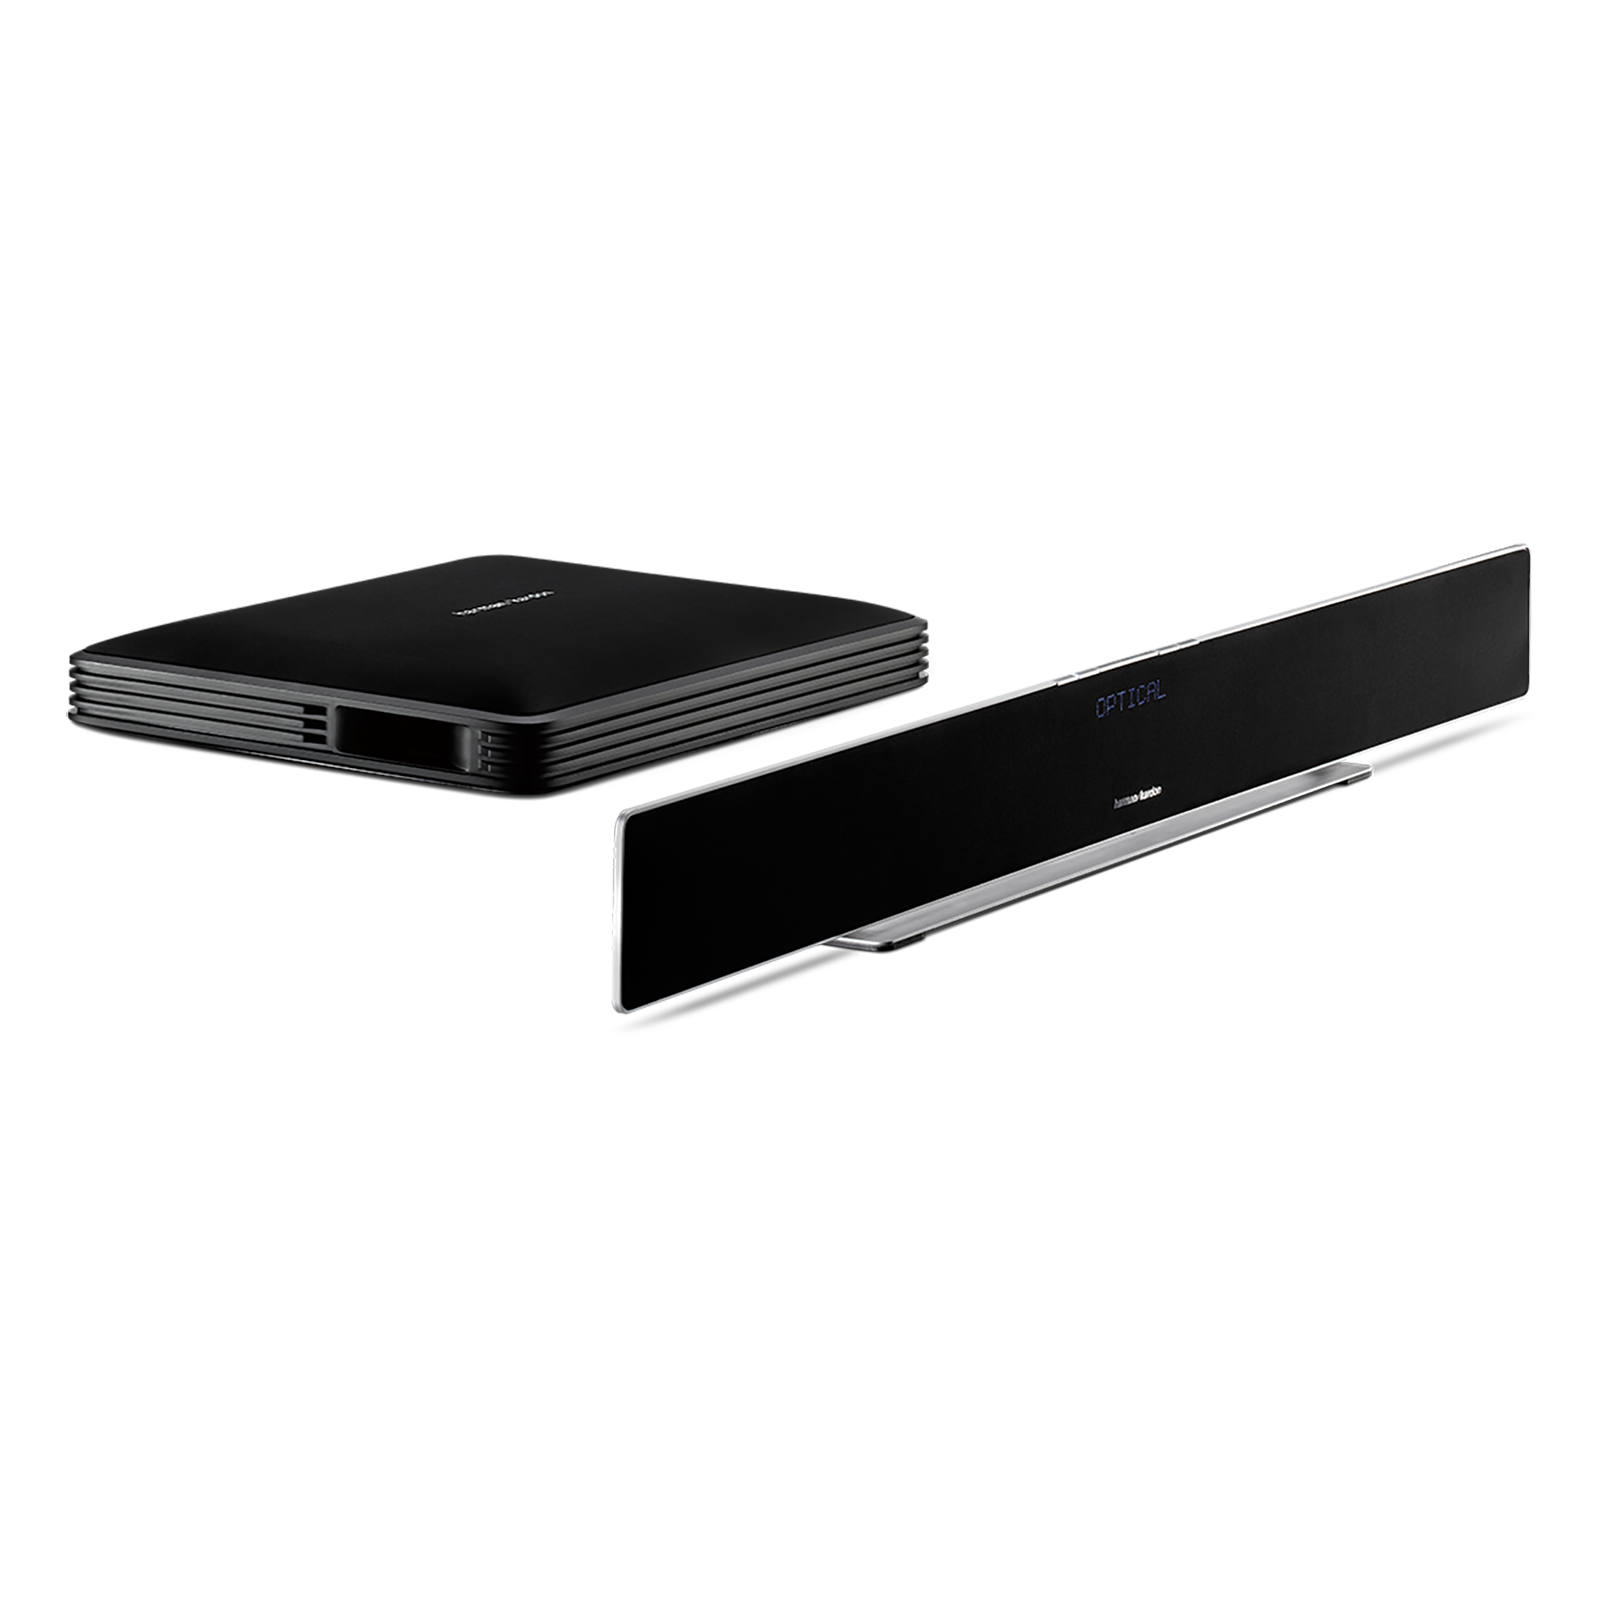 Sabre SB 35 - Black Ash - Devastatingly slim home entertainment soundbar with compact subwoofer. - Detailshot 2